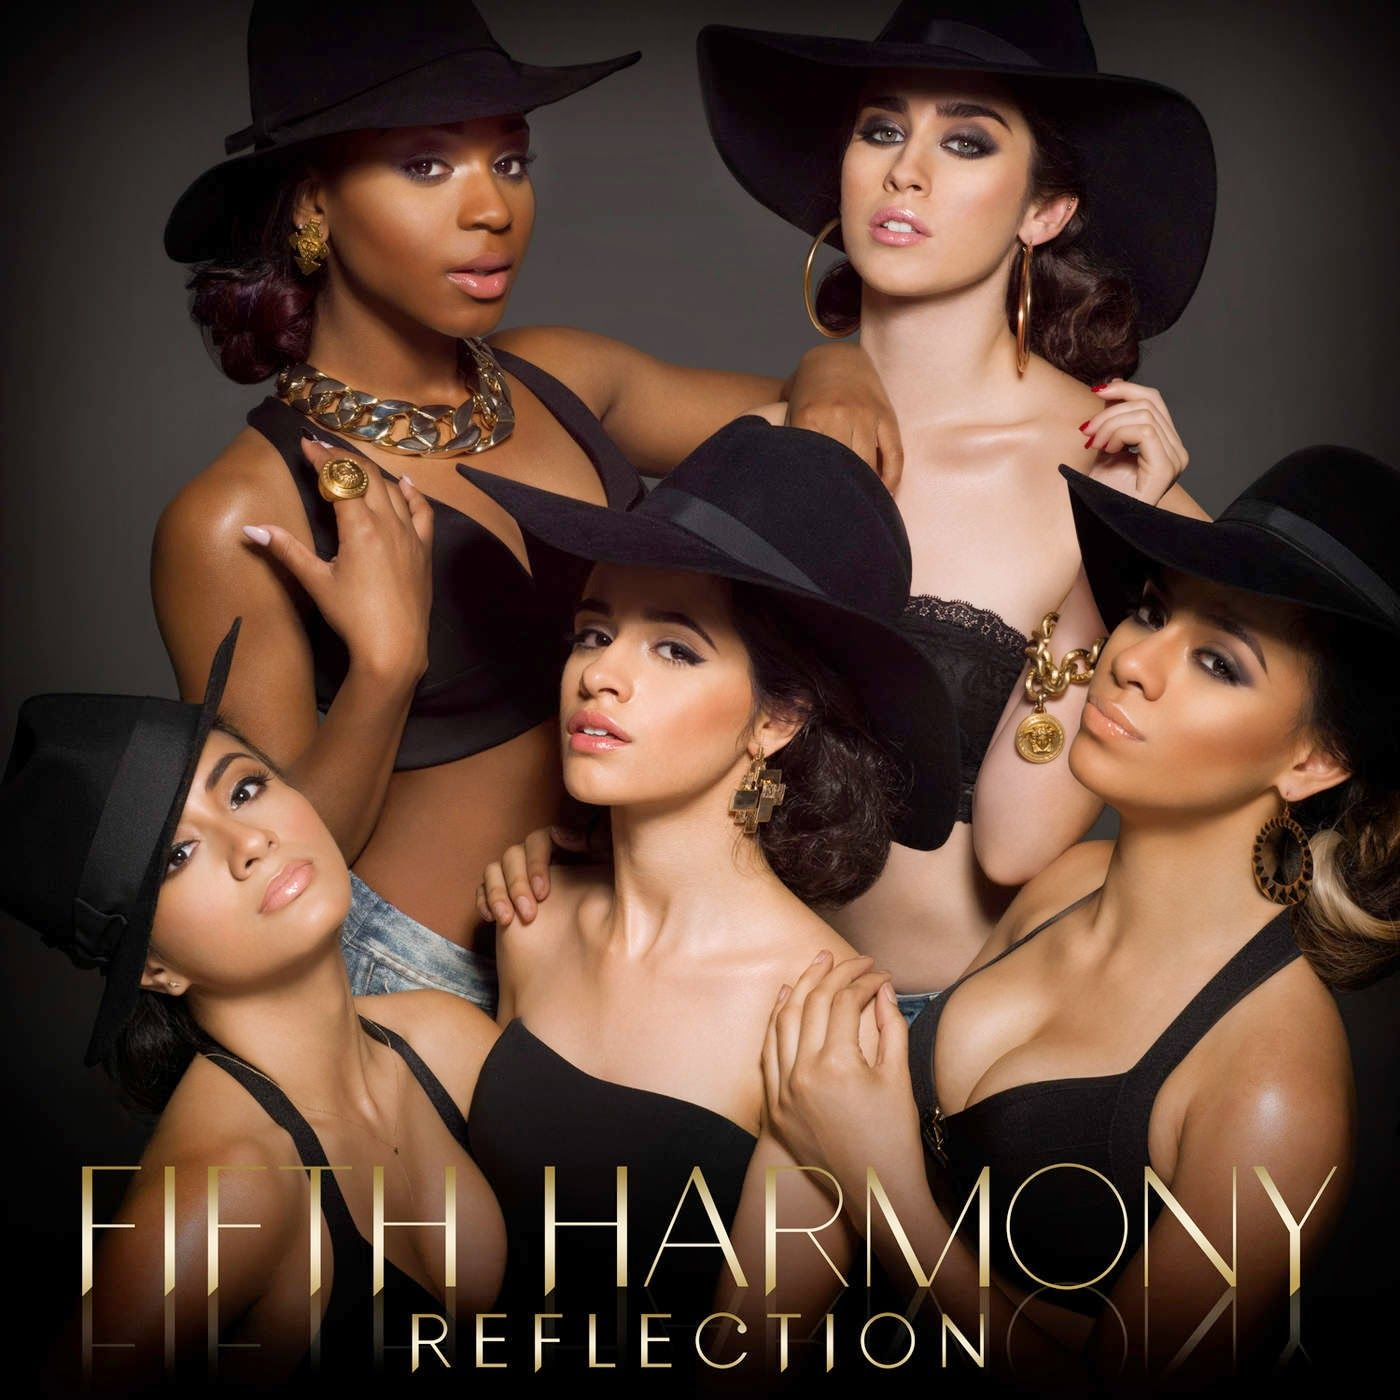 I love Fifth Harmony's Reflection album! It is so good and